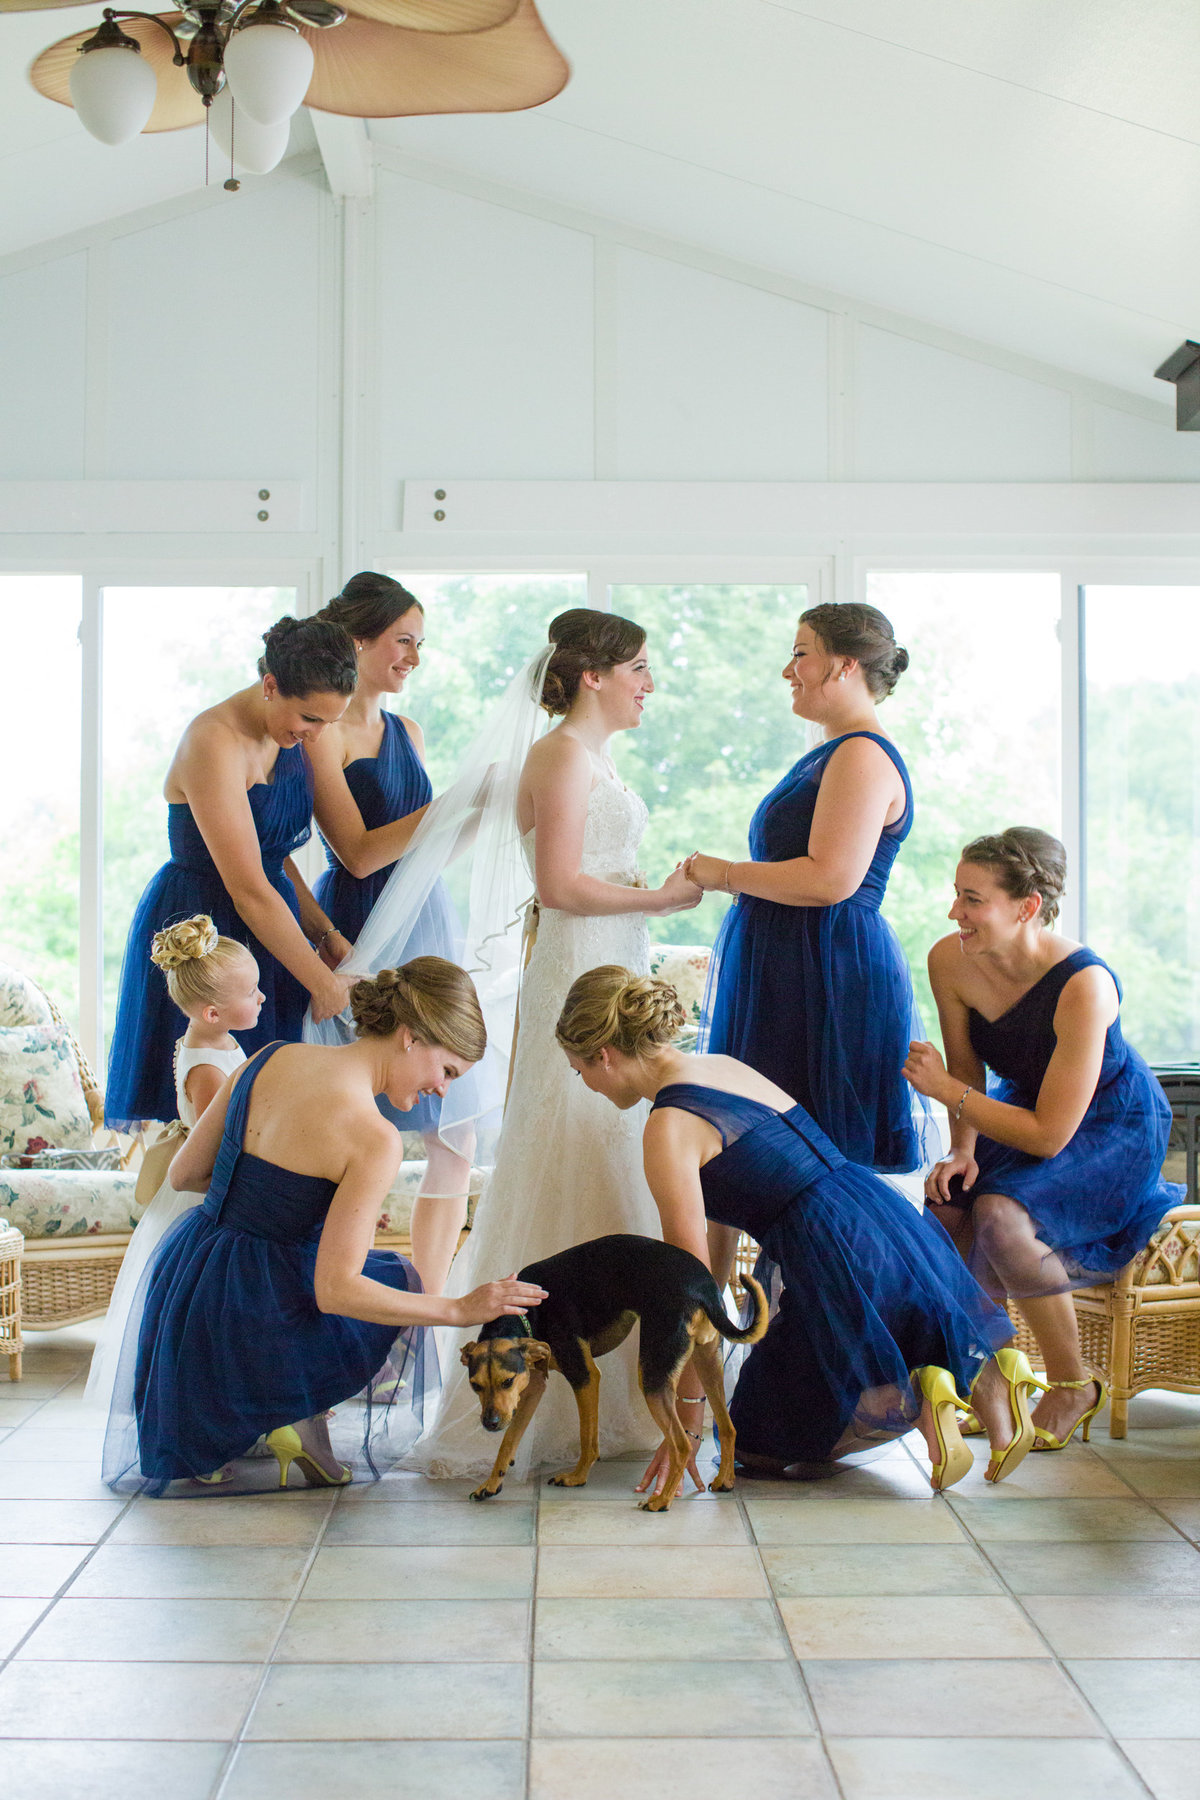 bridesmaids and bride with dog getting ready for wedding